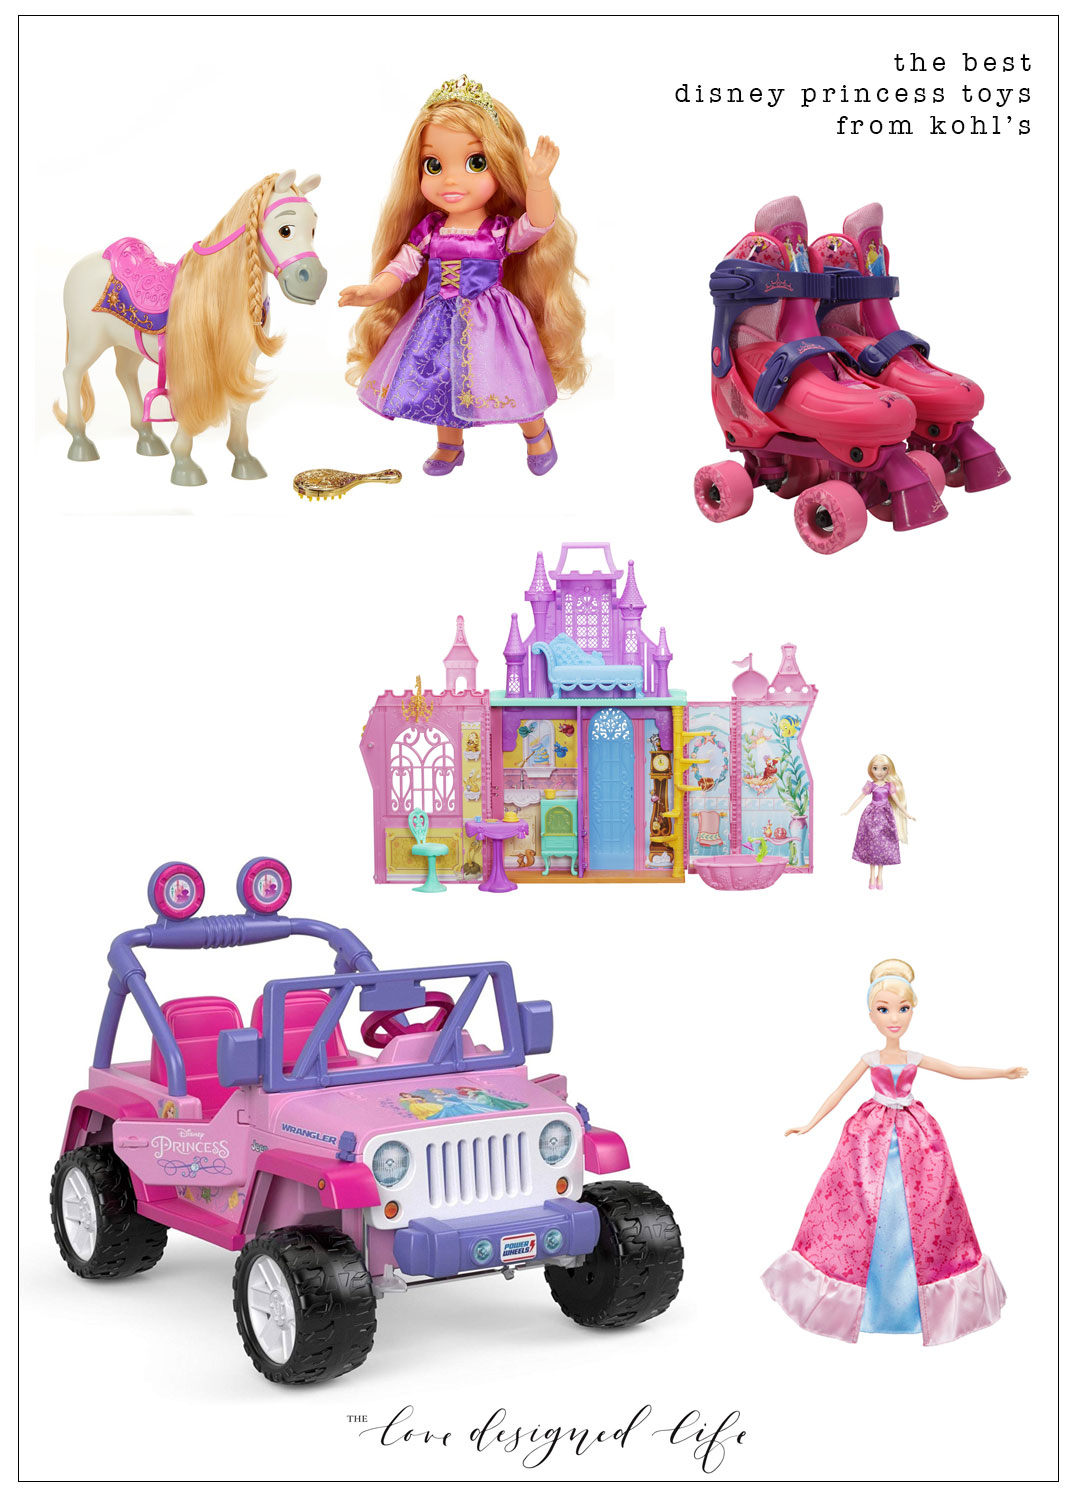 the best disney princess toys from kohl's for the holidays | thelovedesignedilfe.com @kohls #ad #disneyprincess #besttoys #holiday2018